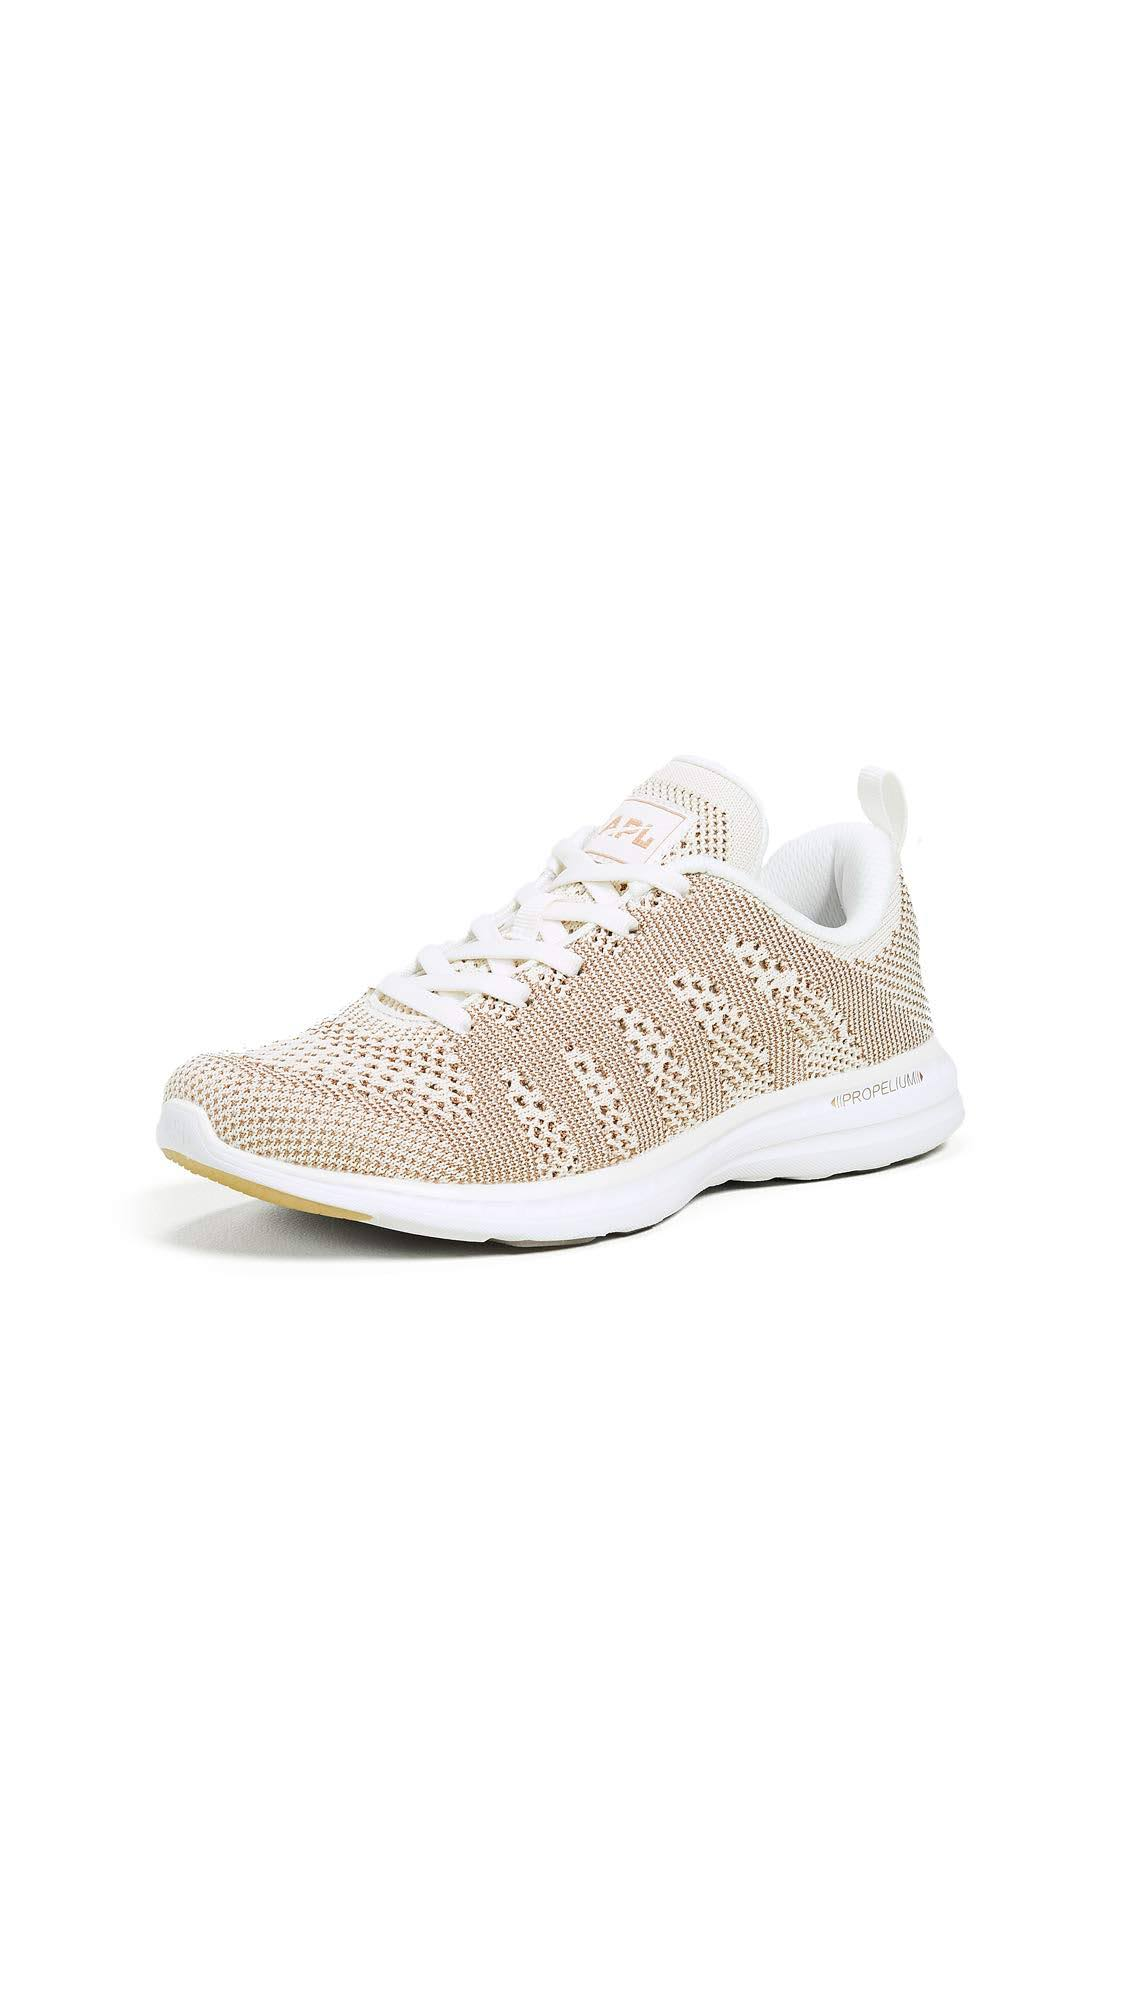 Labs Pro AplAthletic 9 Oro Bianco 5 Techloom IncoloreRosa Propulsion Sneakers YvgyImf6b7